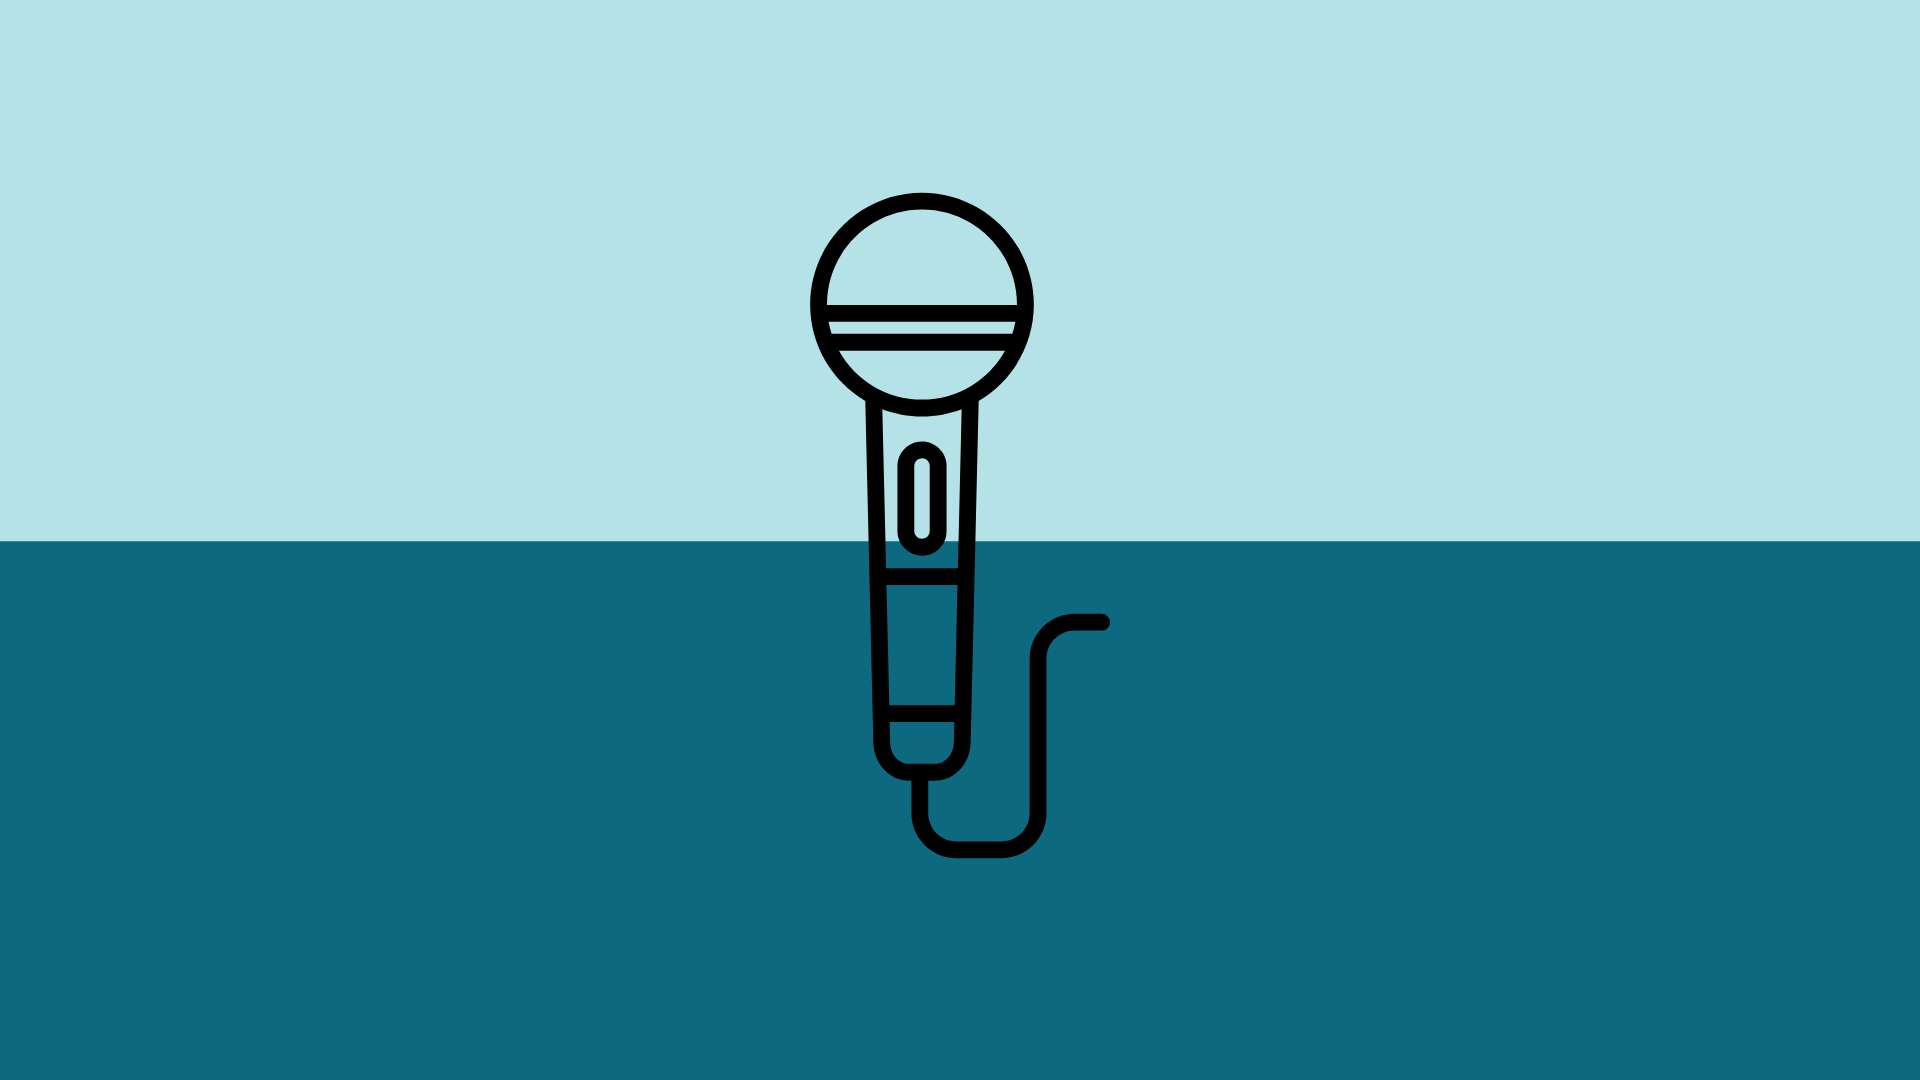 Line art of a microphone over a light blue and dark blue background